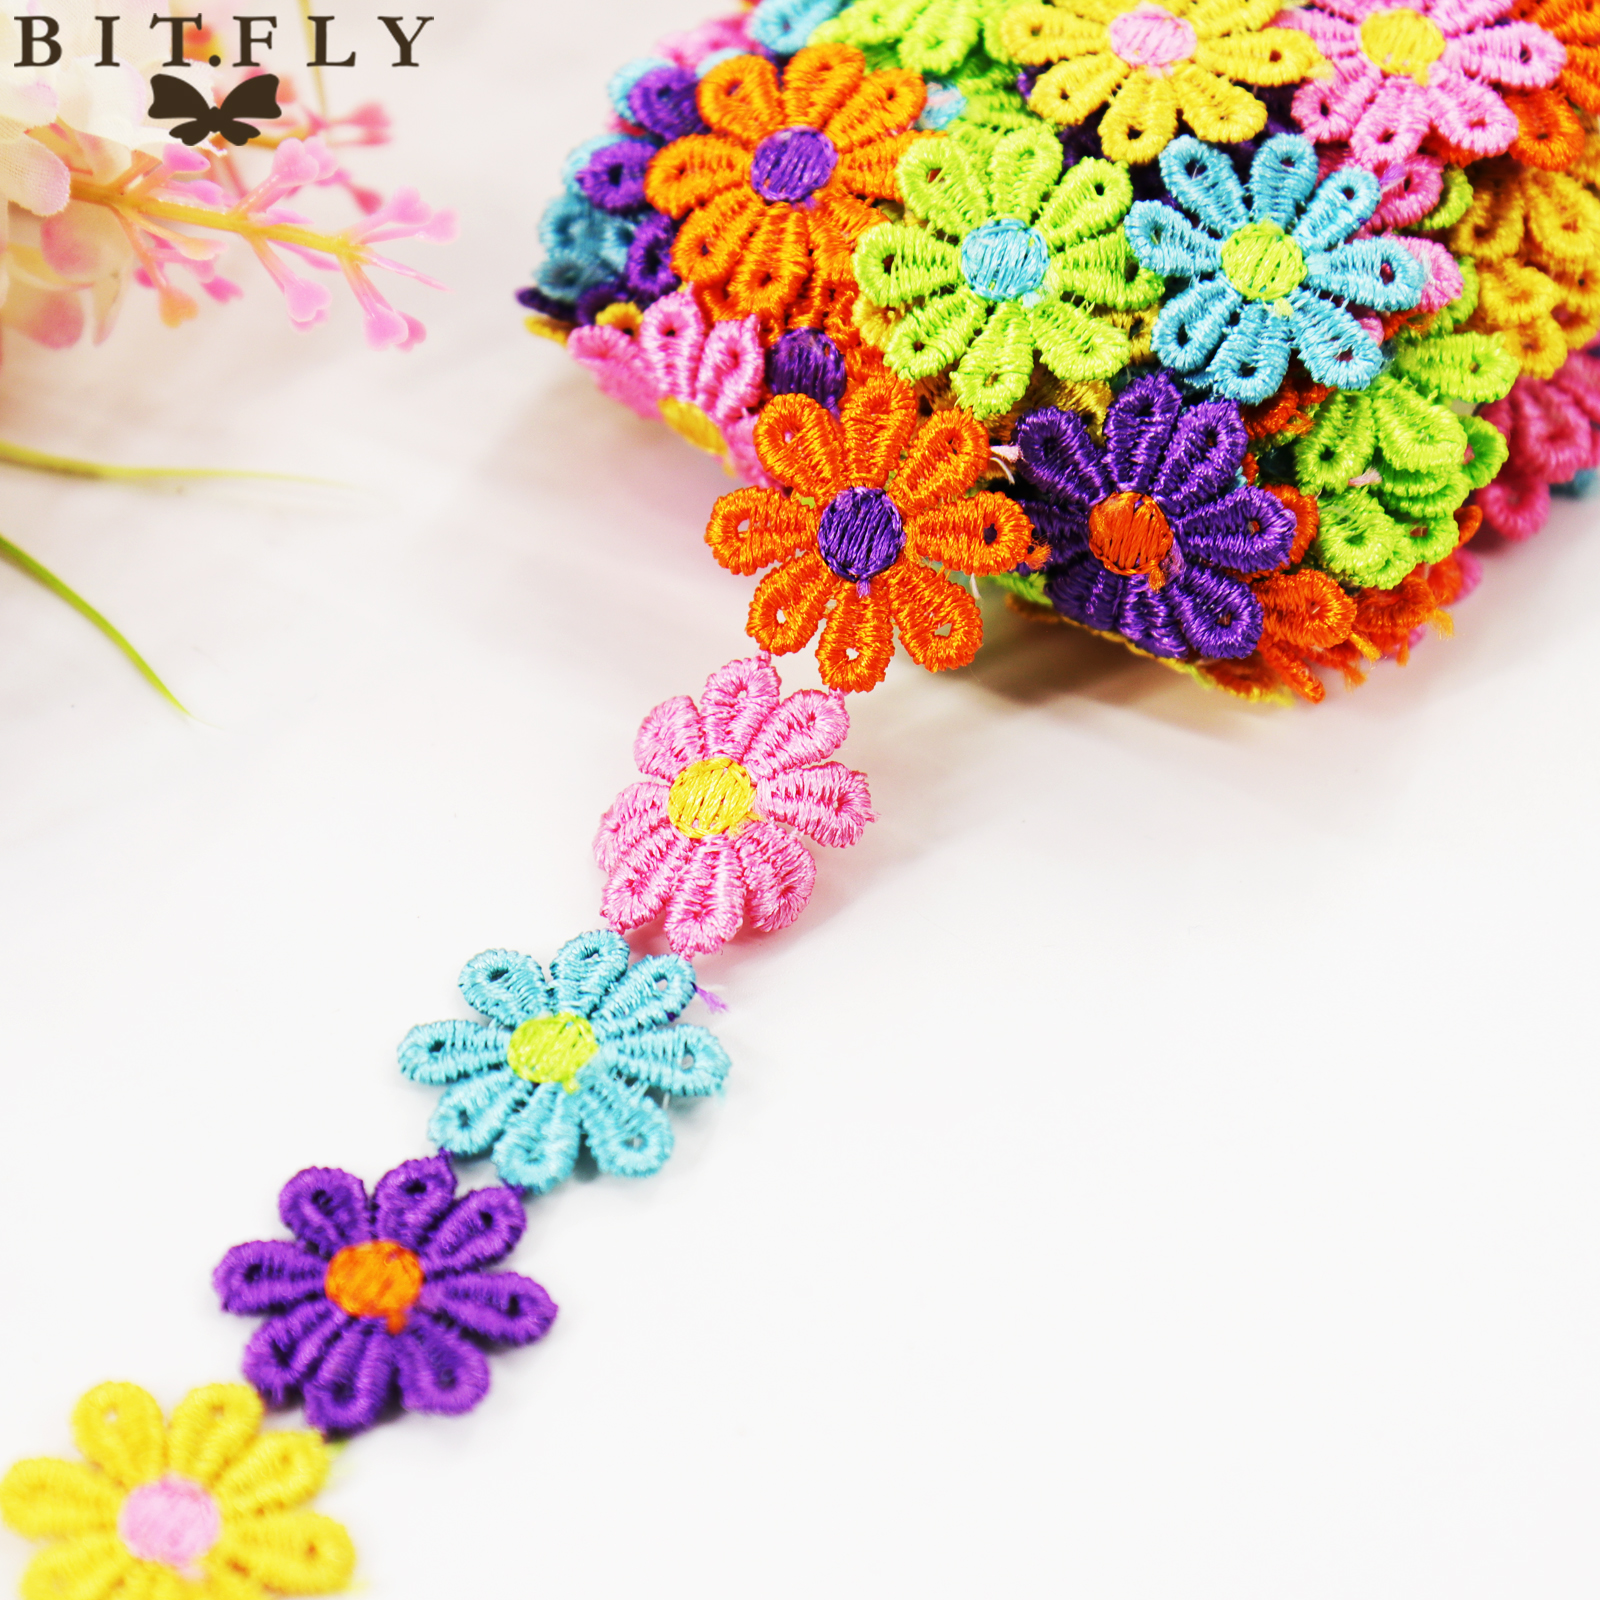 BIT.FLY 2.5cmx1Yard Embroidery Water Soluble Applique Flower Lace Ribbon Wedding Party Decoration Flower Strips DIY Accessories